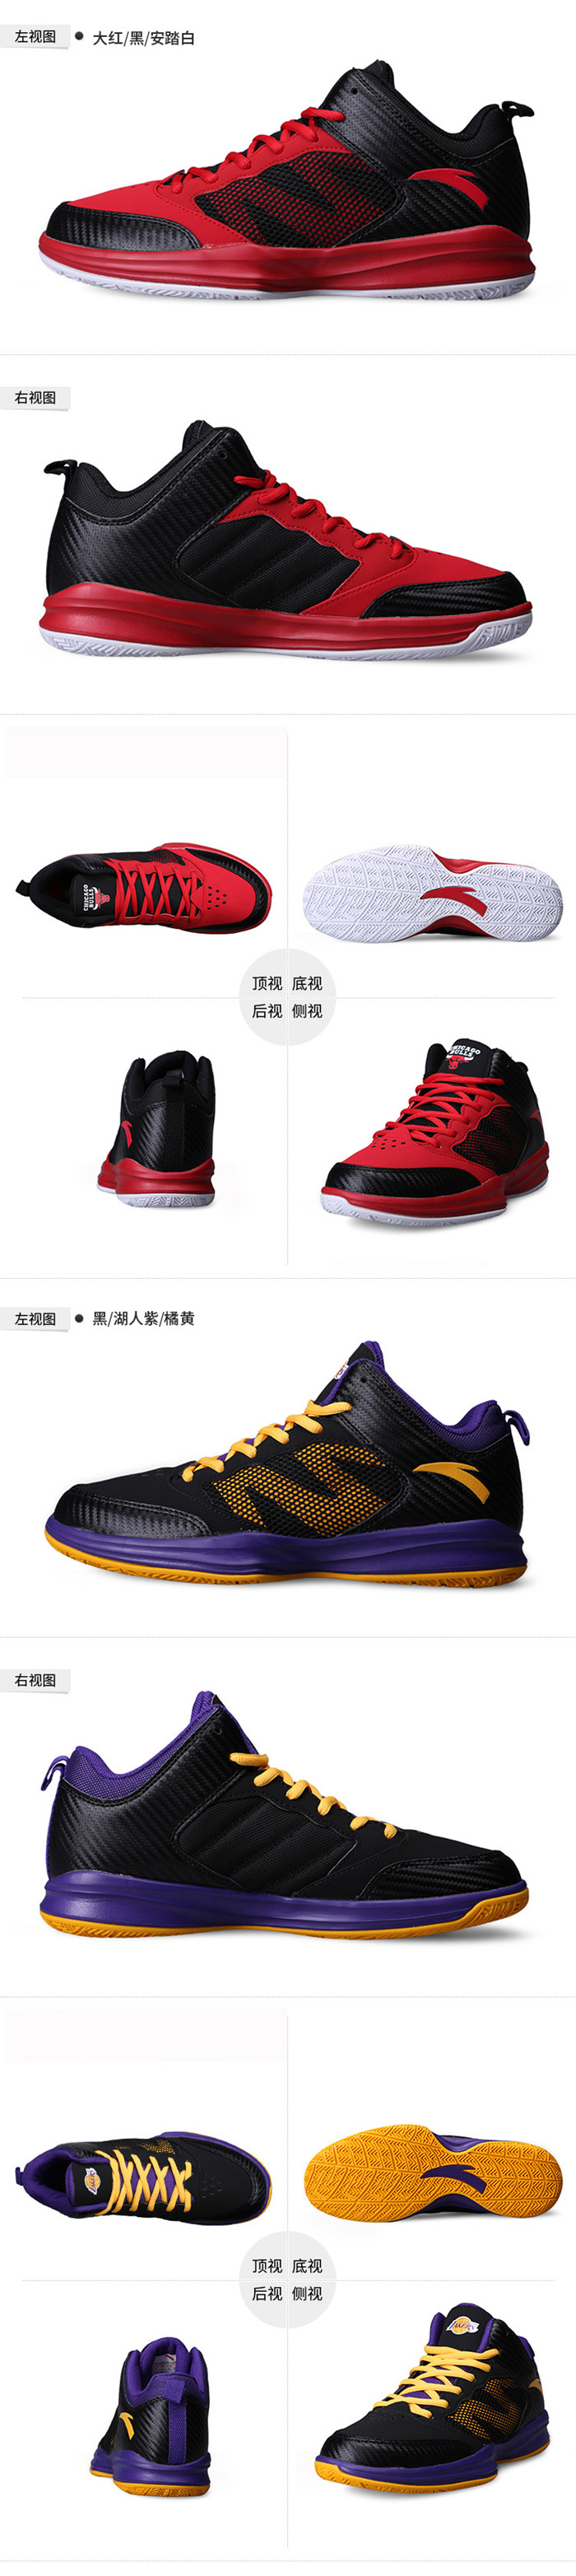 Anta NBA basketball Shoes